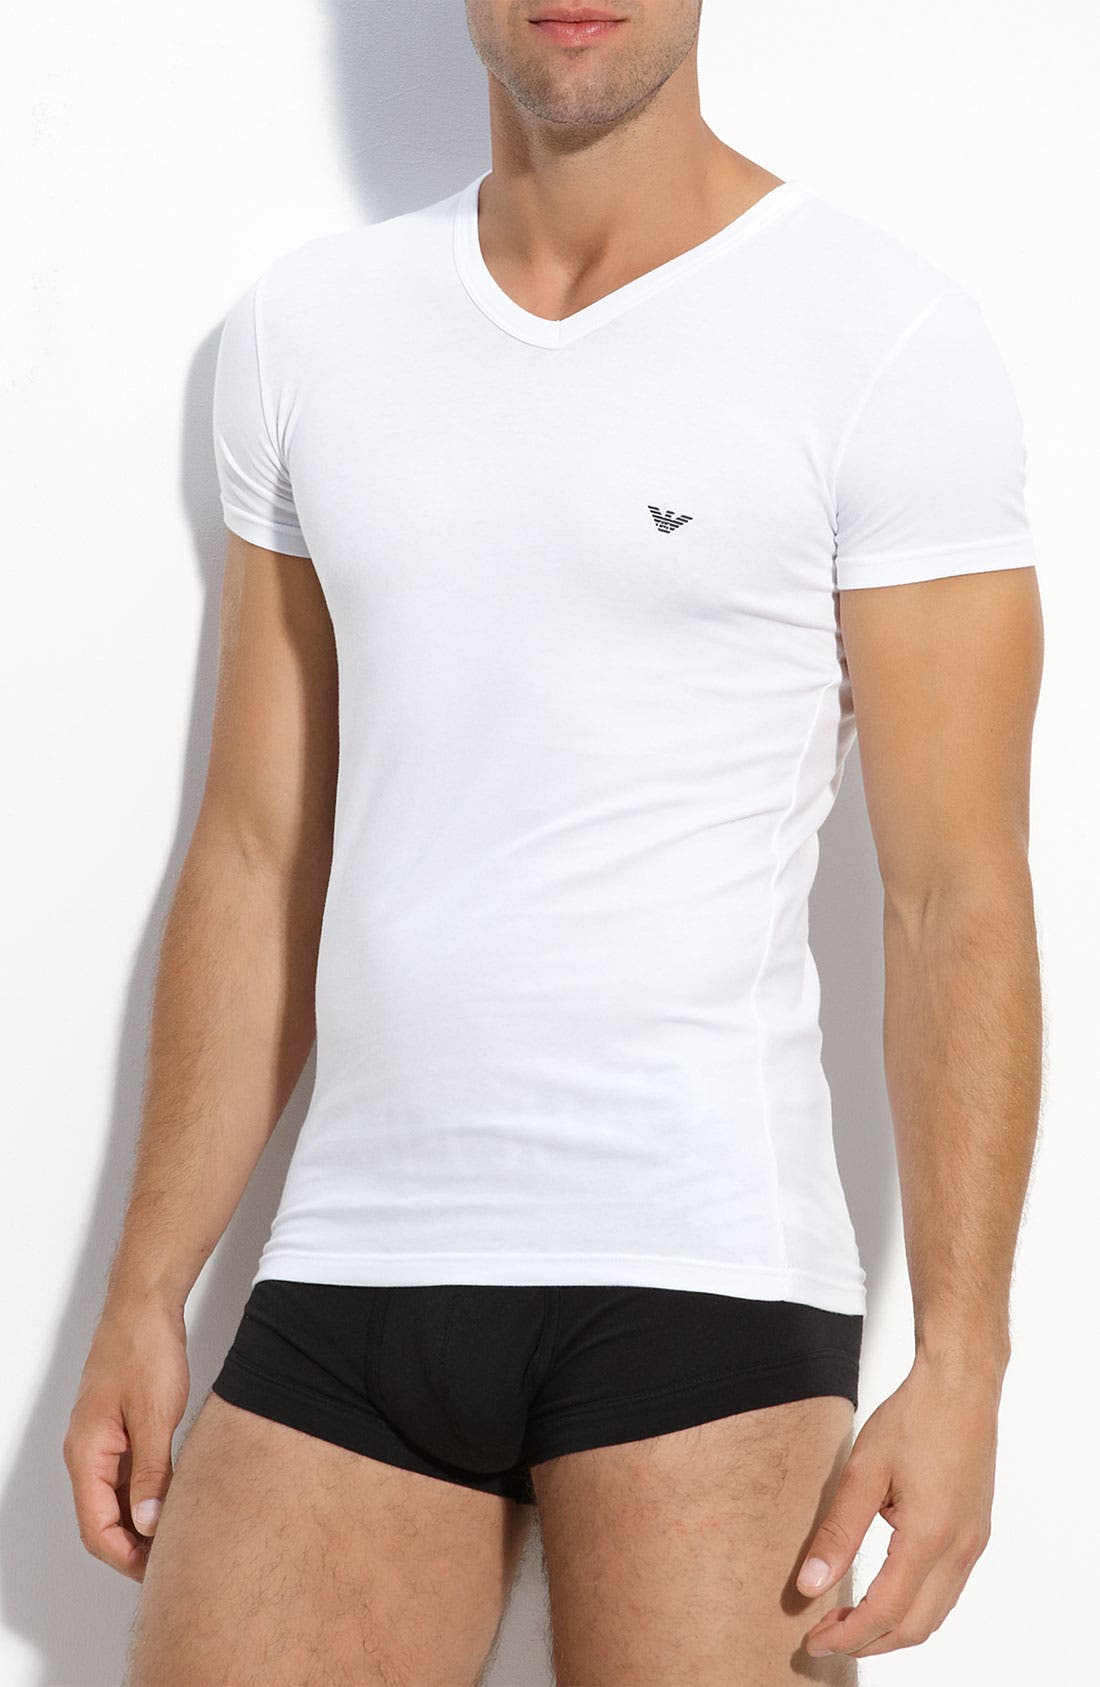 Main Image - Emporio Armani 'Eagle' V-Neck T-Shirt